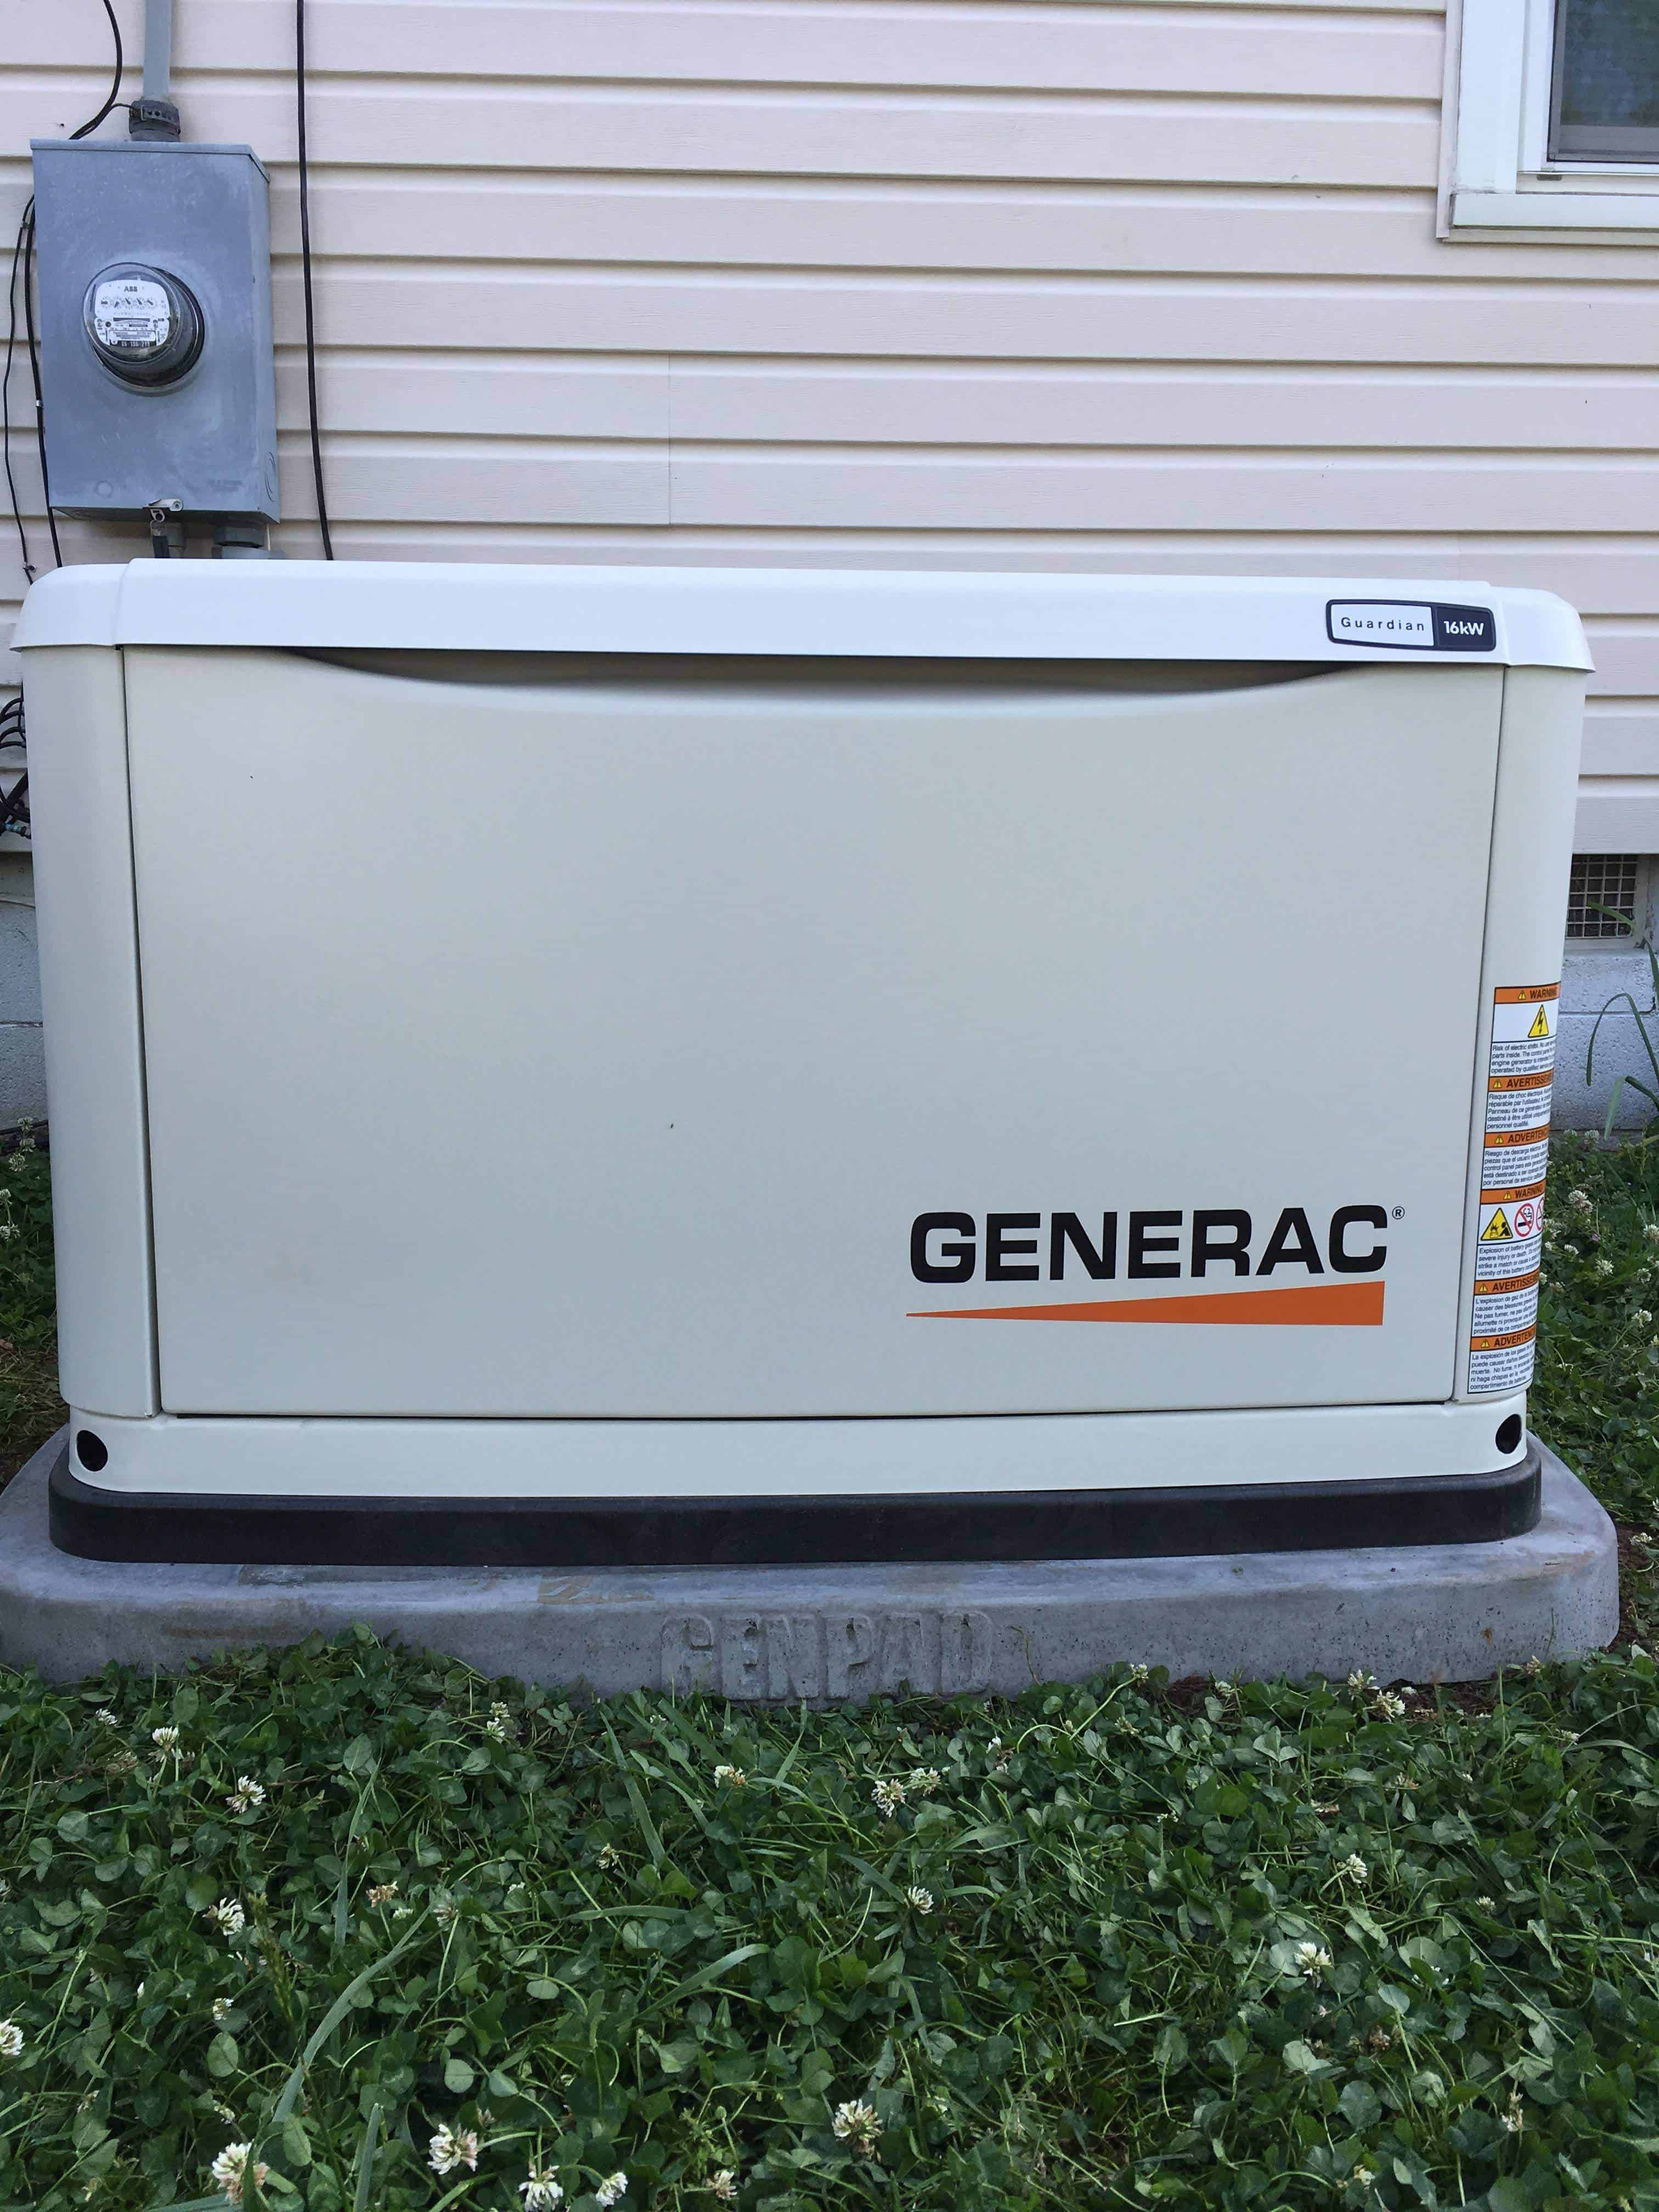 Automatic Standby Generac Generator City of Hopewell